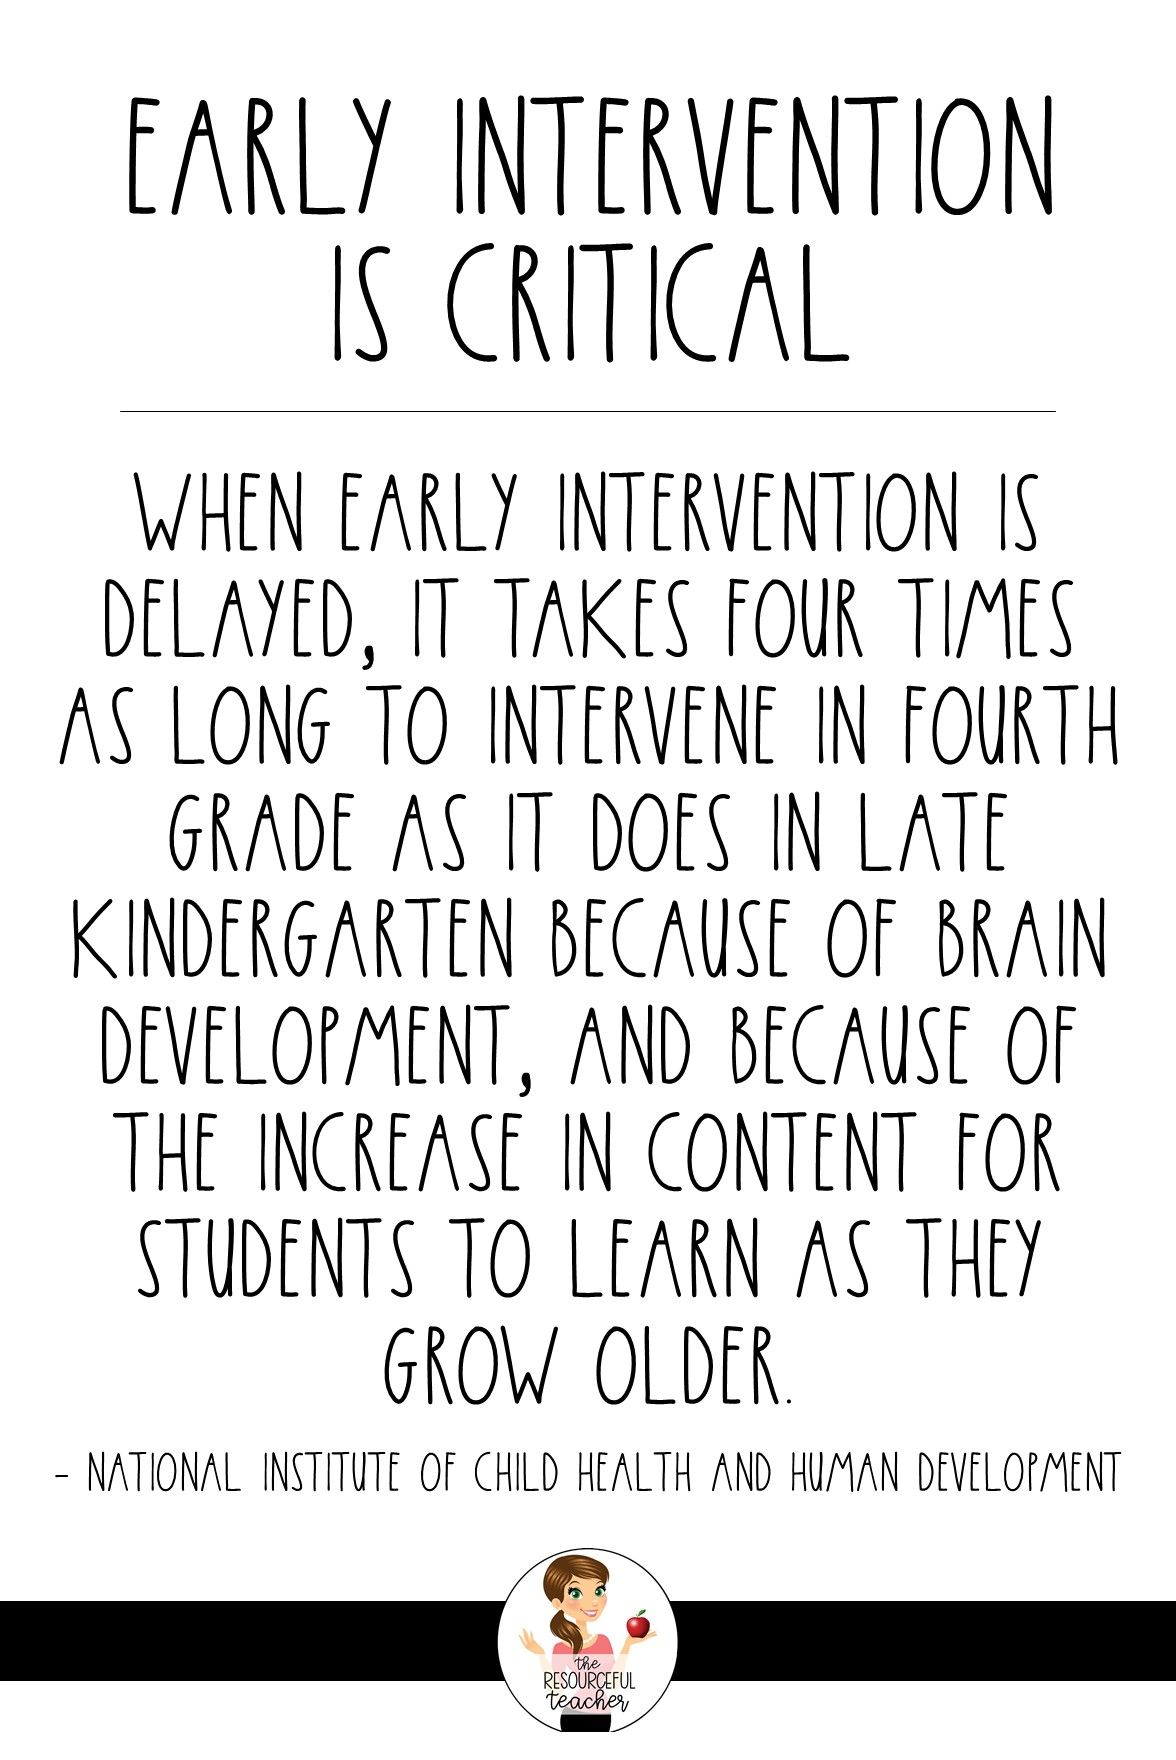 Early intervention is critical. When early intervention is